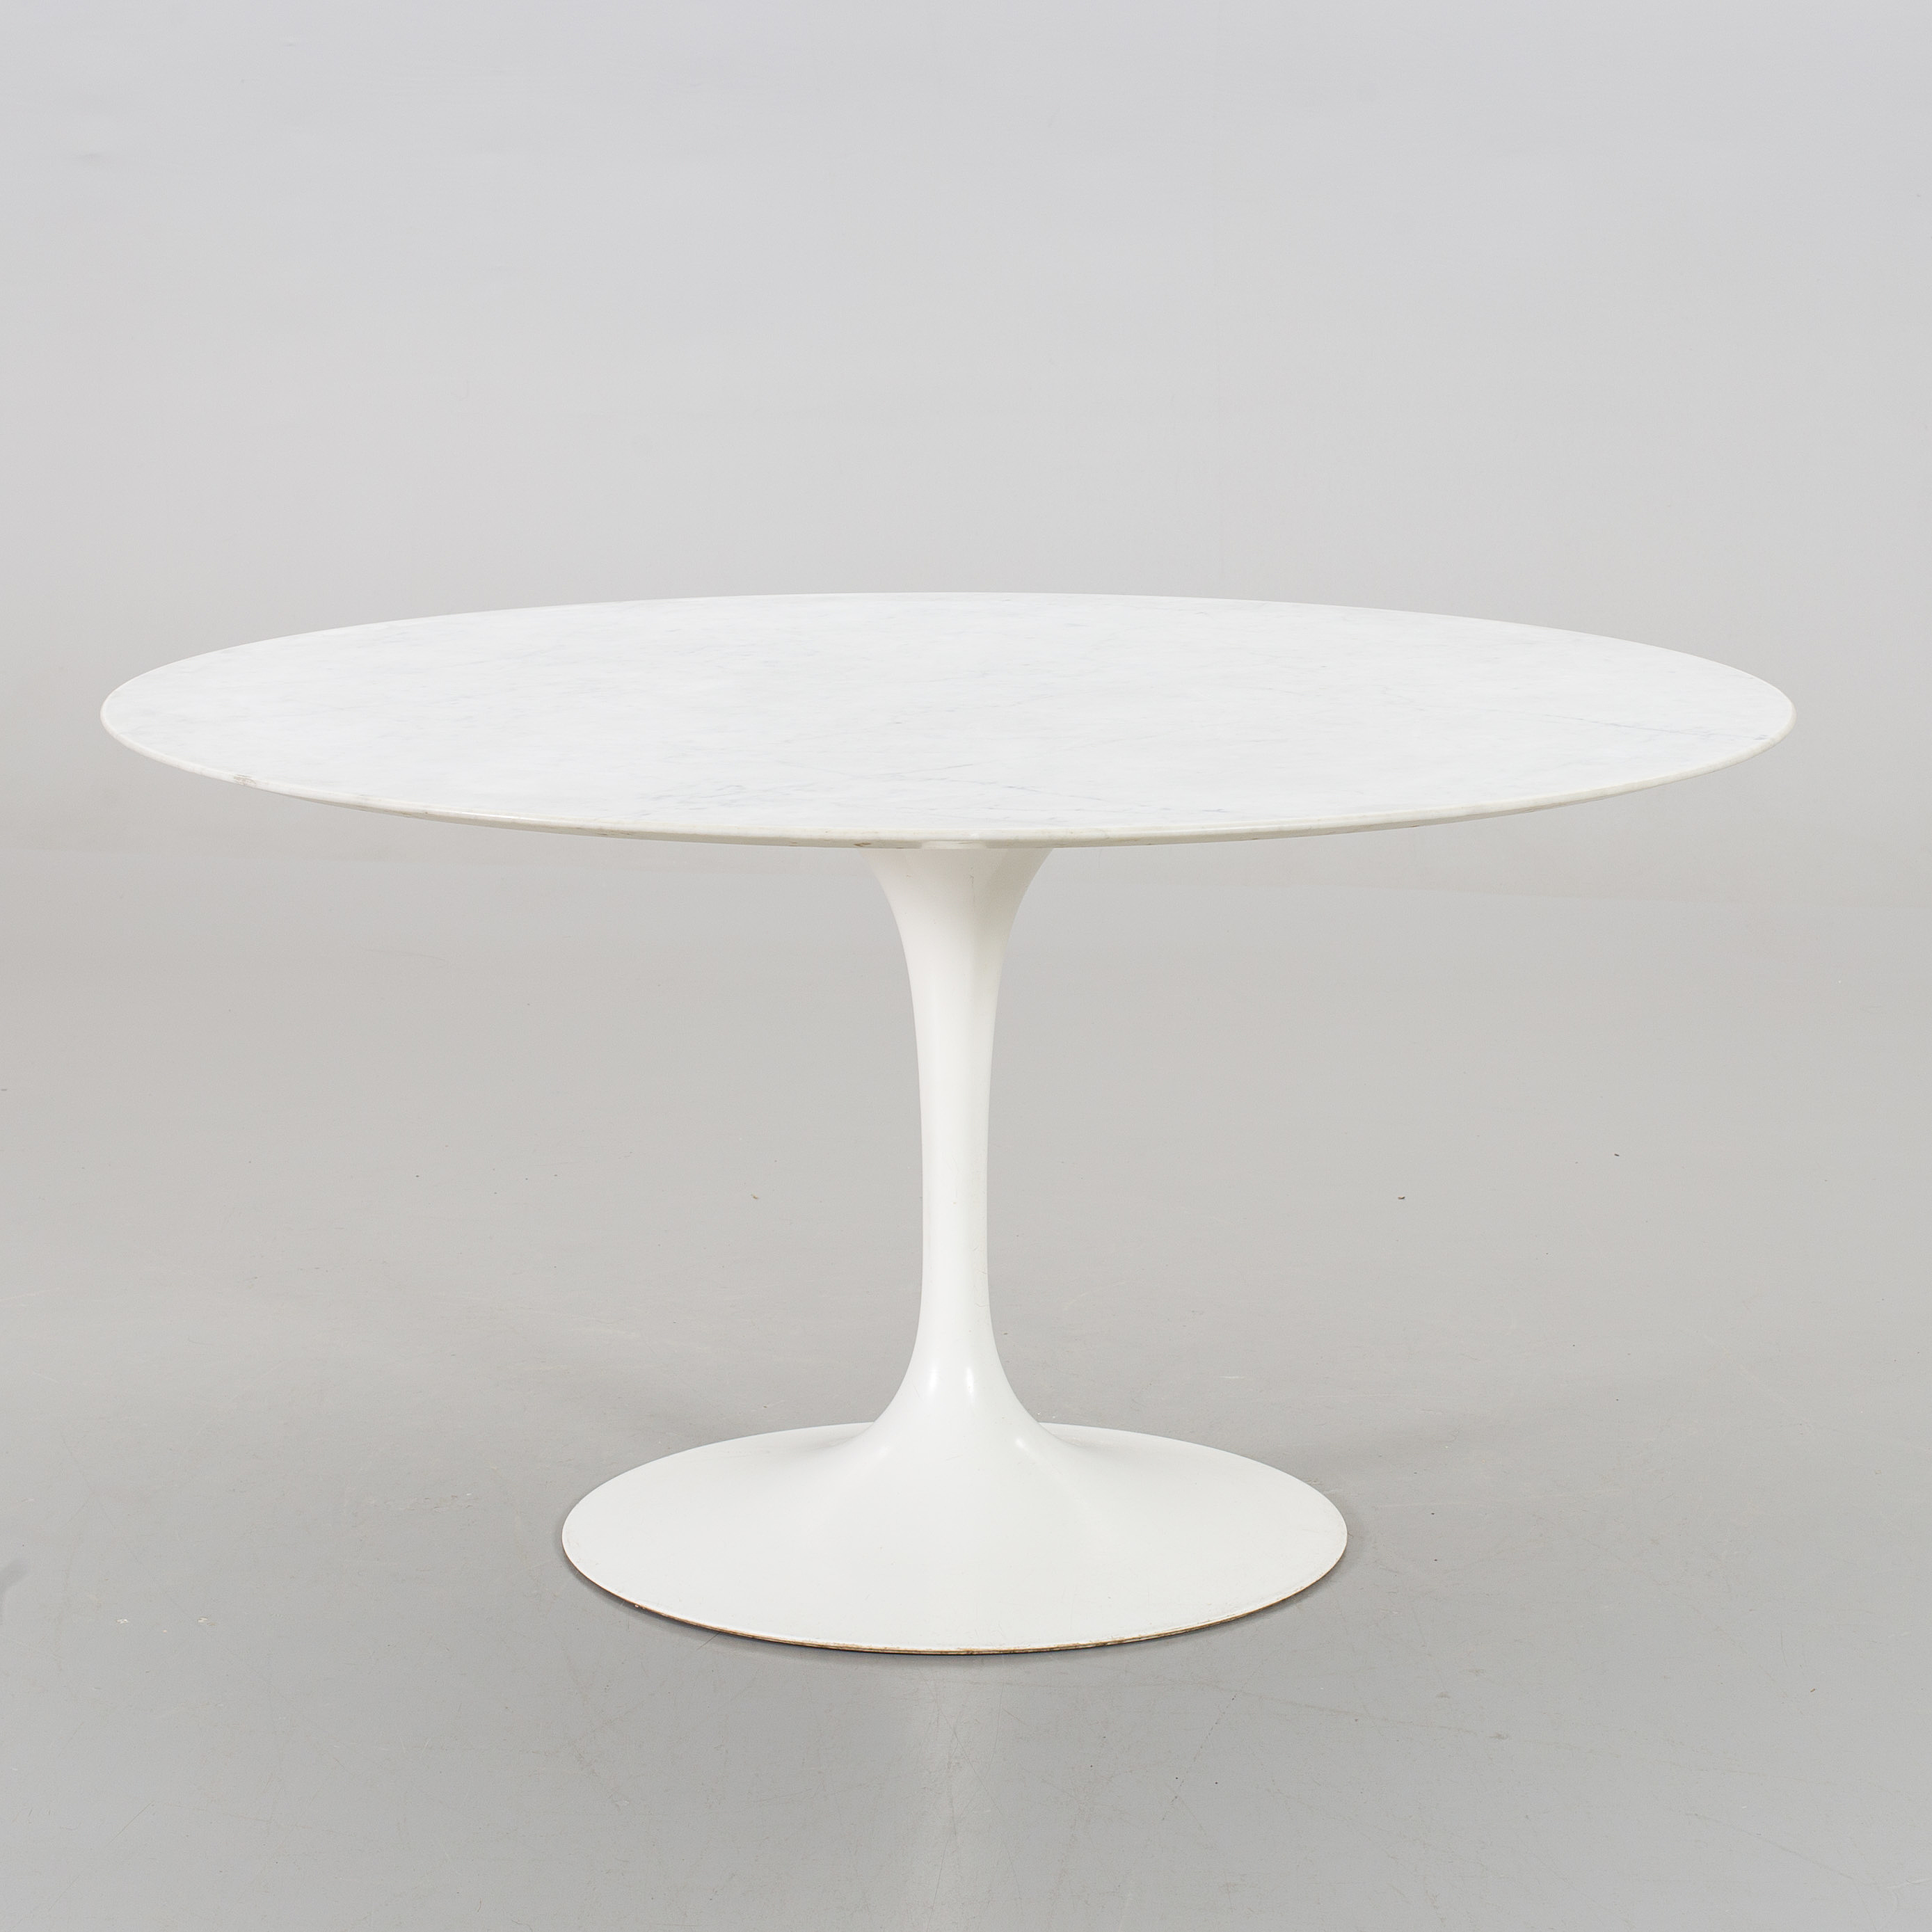 company potato arabescato dining products table saarinen round knoll main base tulip top white couch eero marble